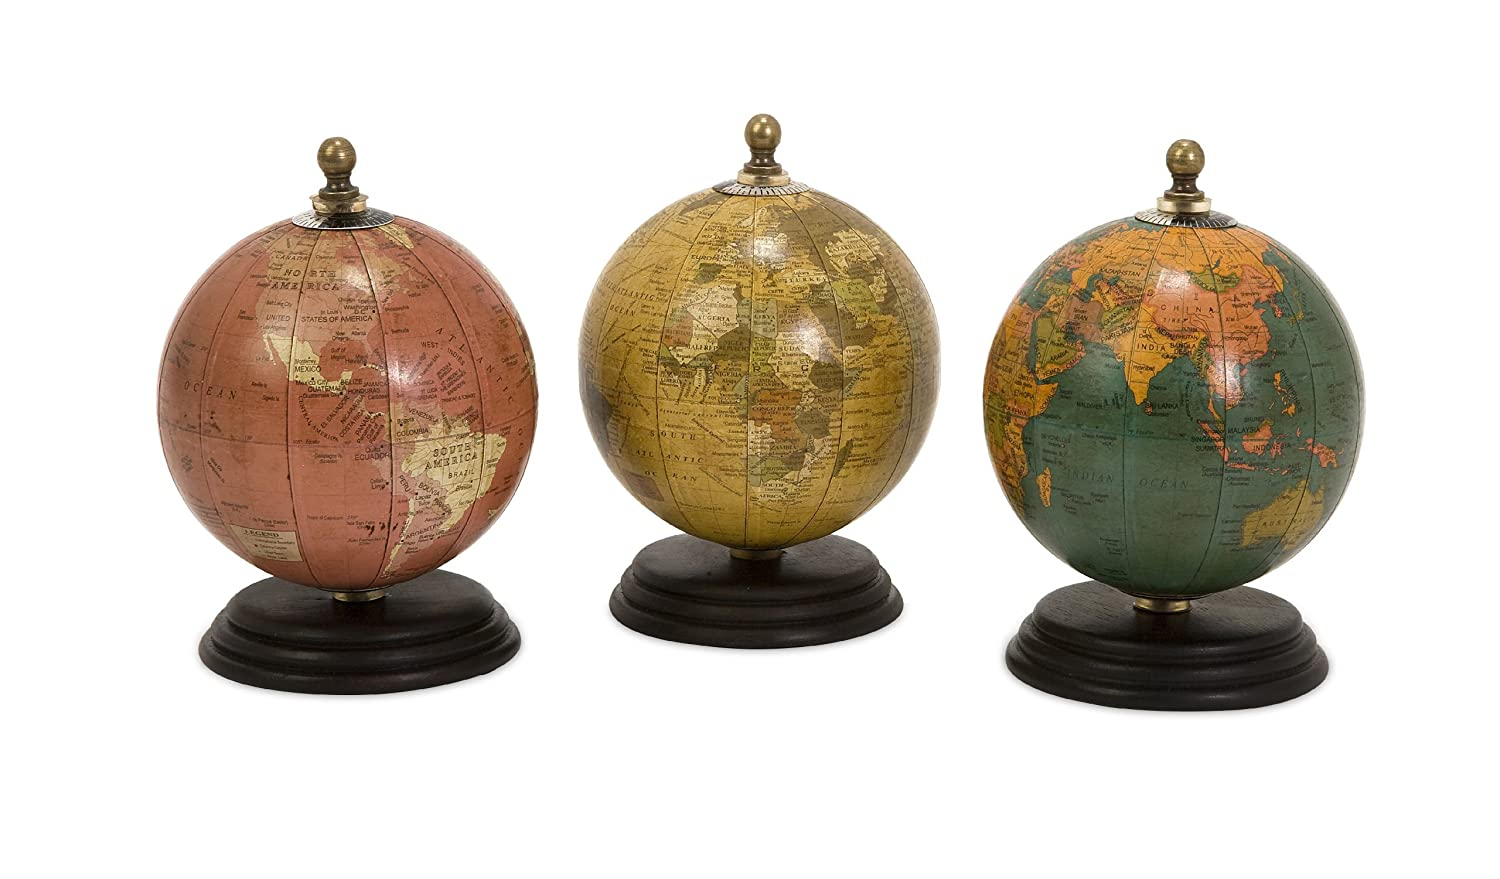 Imax 73027-3 Antique Finish Mini Globe – Traditional Globe, Wooden Base, Antique Finish. Home and Office Supplies